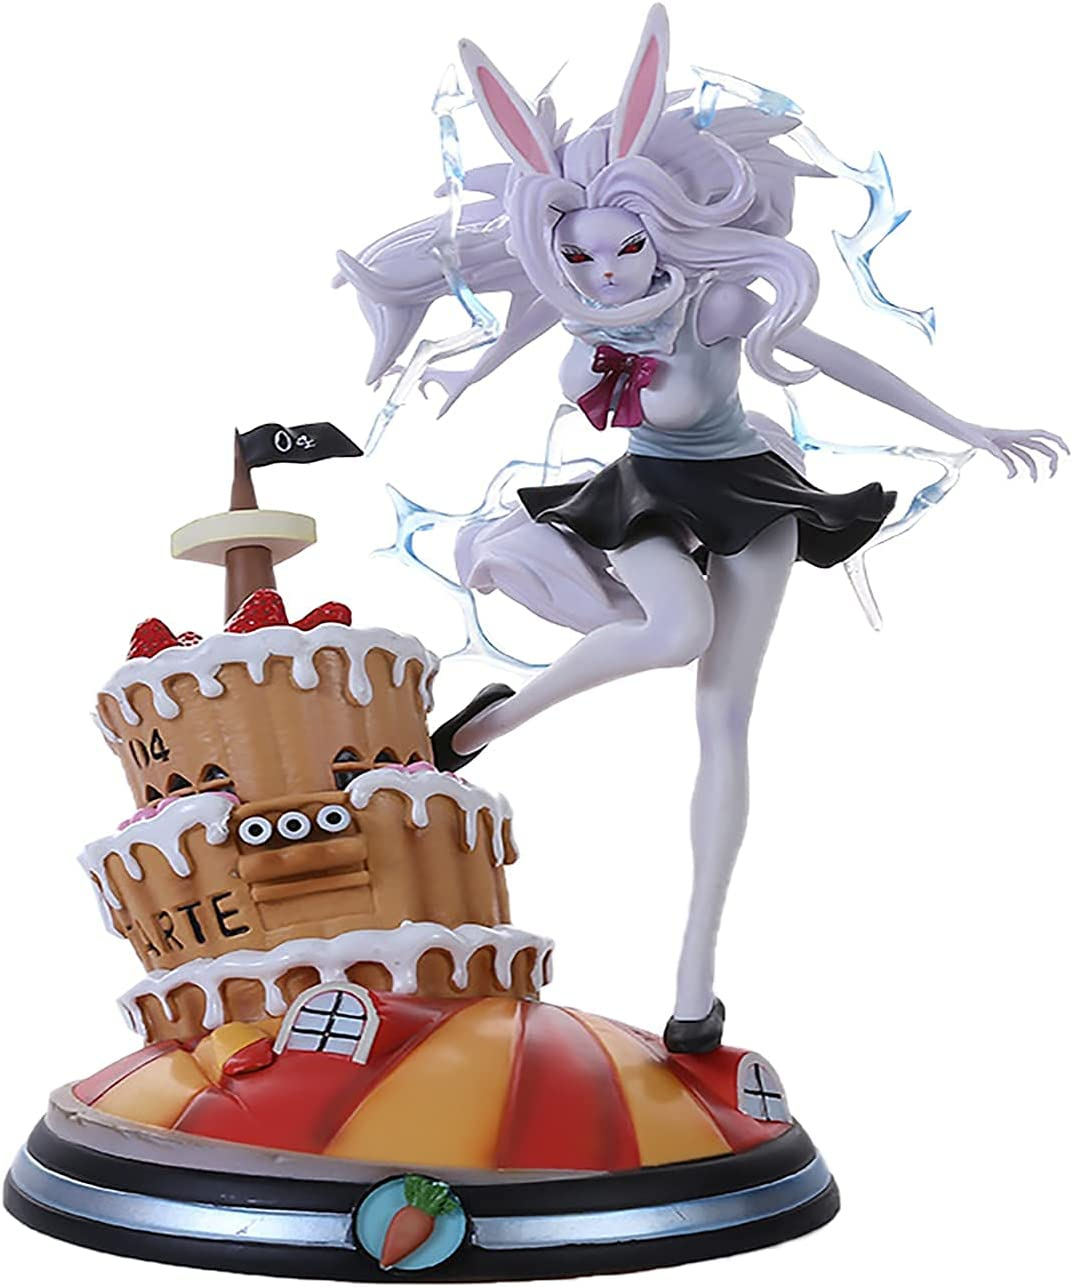 Anime Figures One Piece Carrot 12.9 Mail order cheap Anim Toy 33cm Inch Long Beach Mall